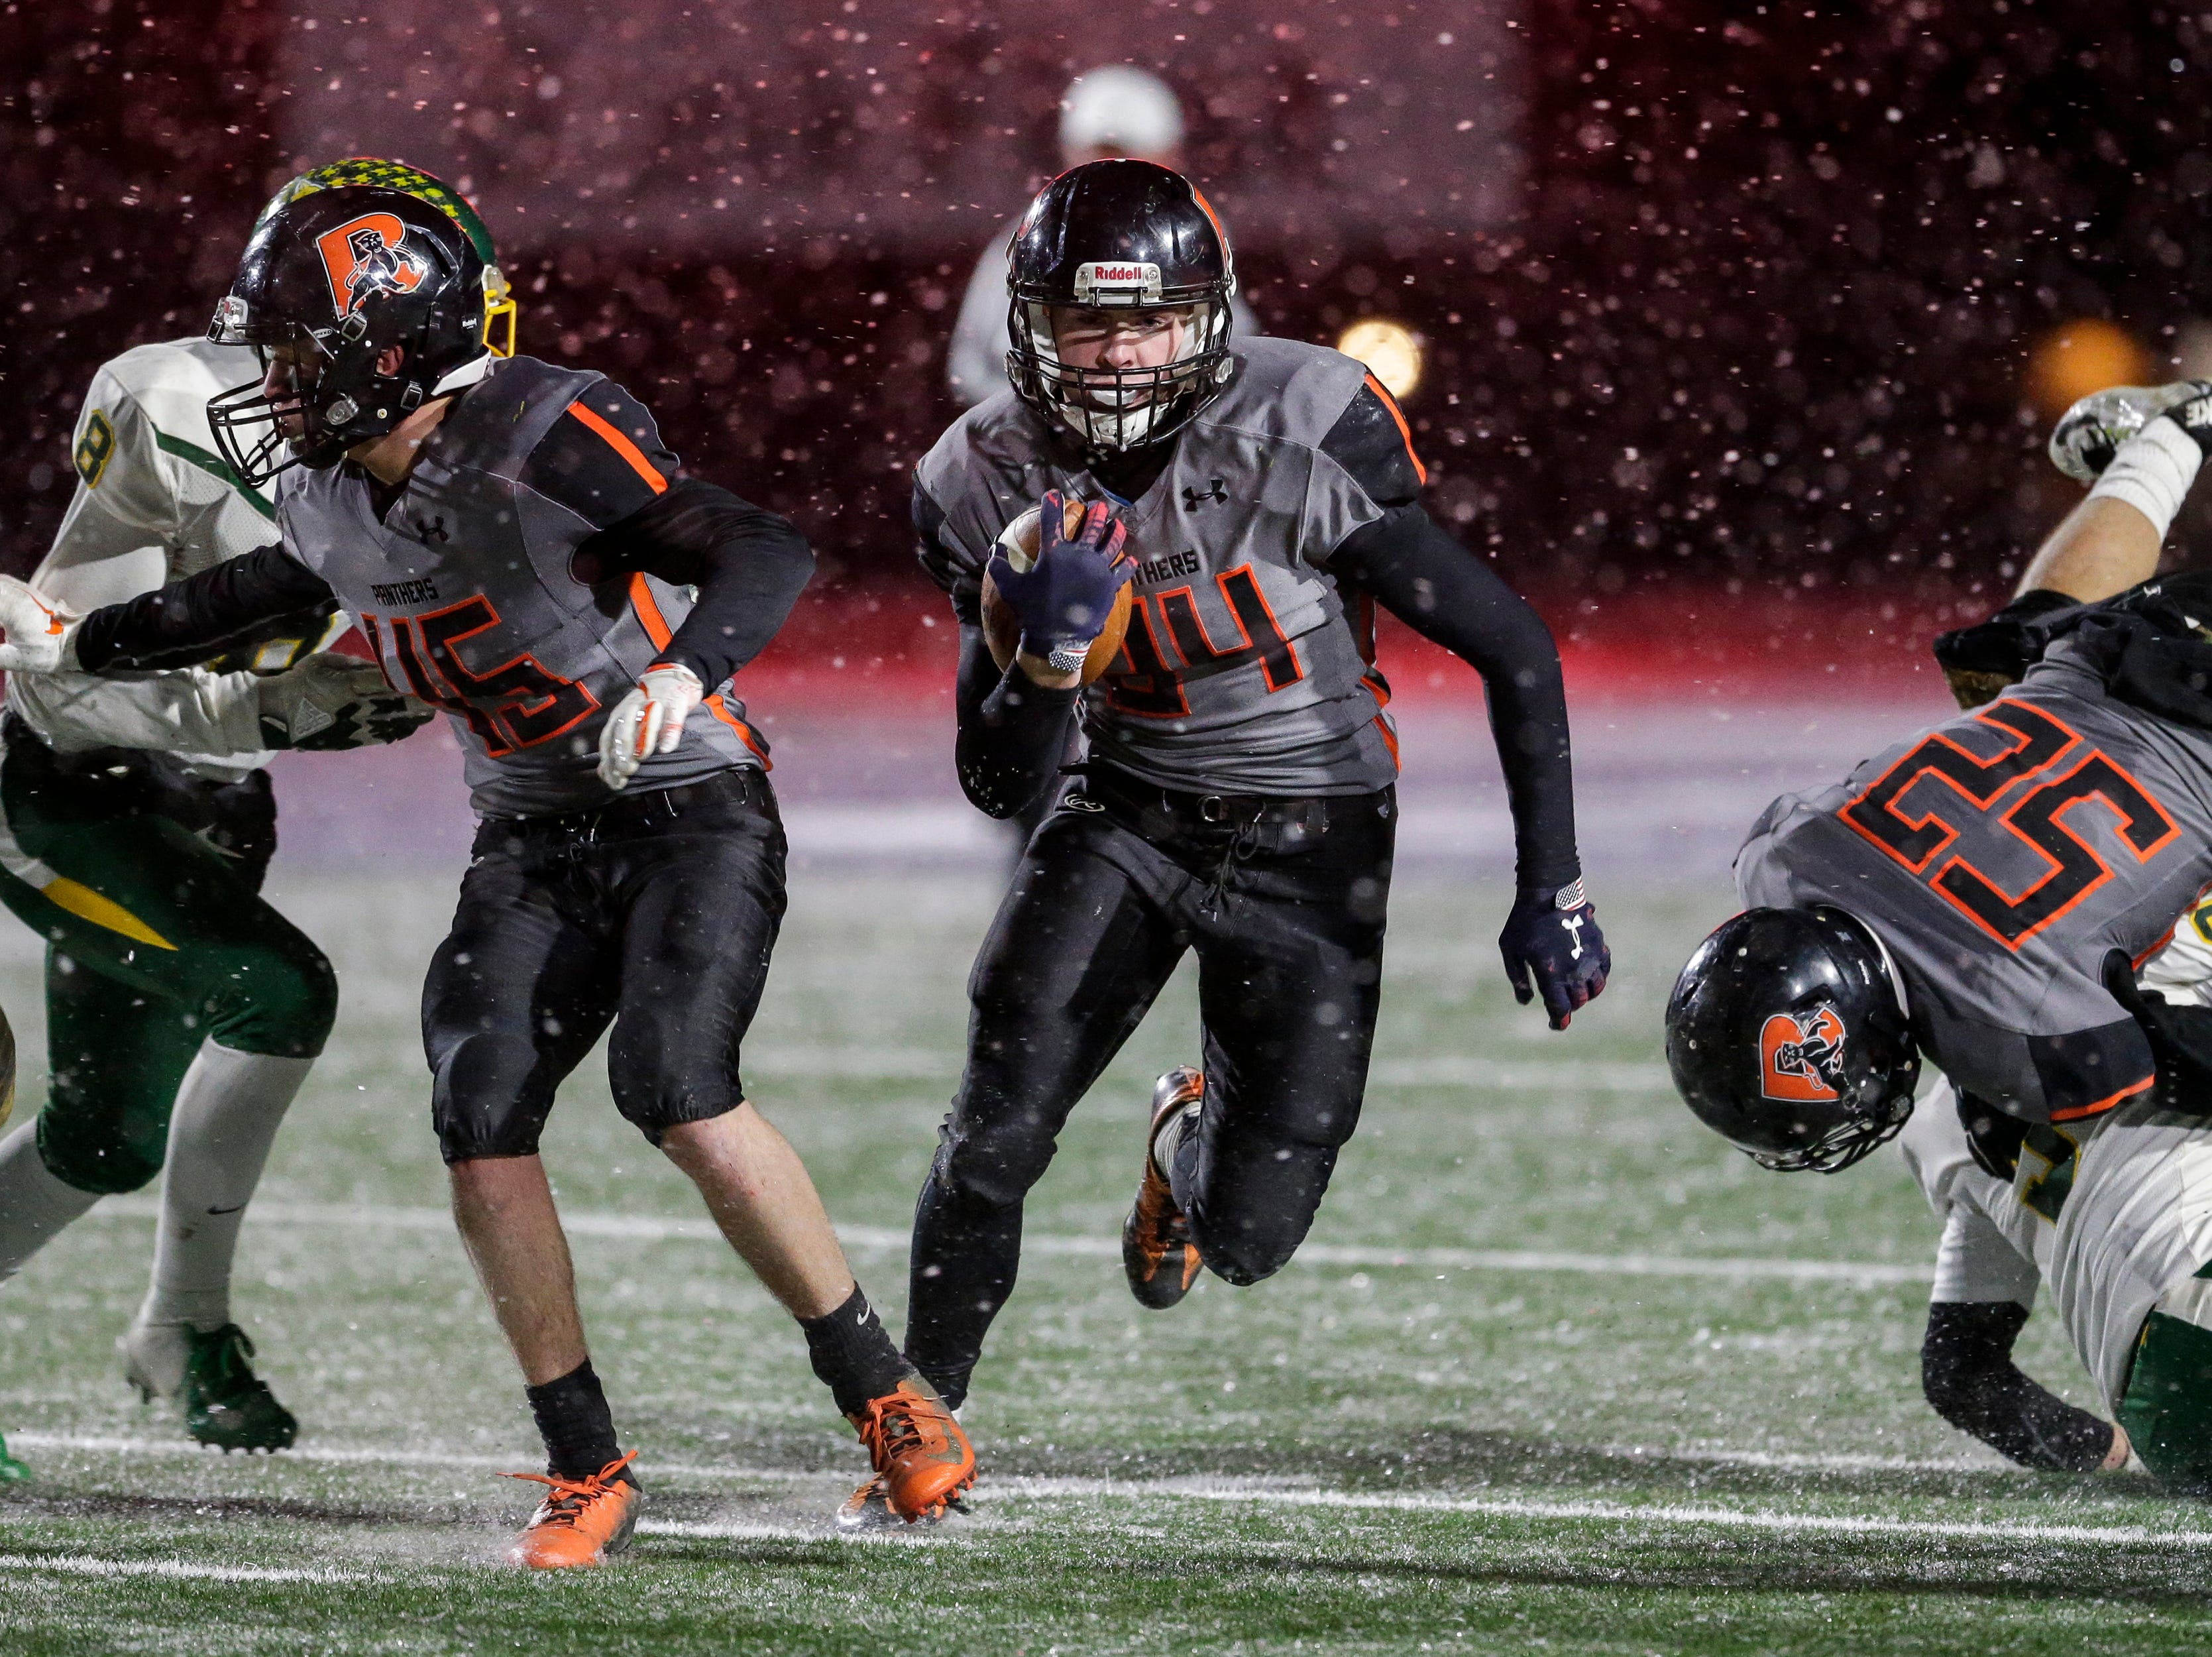 Reedsville's Brandon Stelzer (34) runs the ball against Edgar during a WIAA Division 7 semifinal game at Waupaca High School Friday, November 9, 2018, in Waupaca, Wis. Joshua Clark/USA TODAY NETWORK-Wisconsin